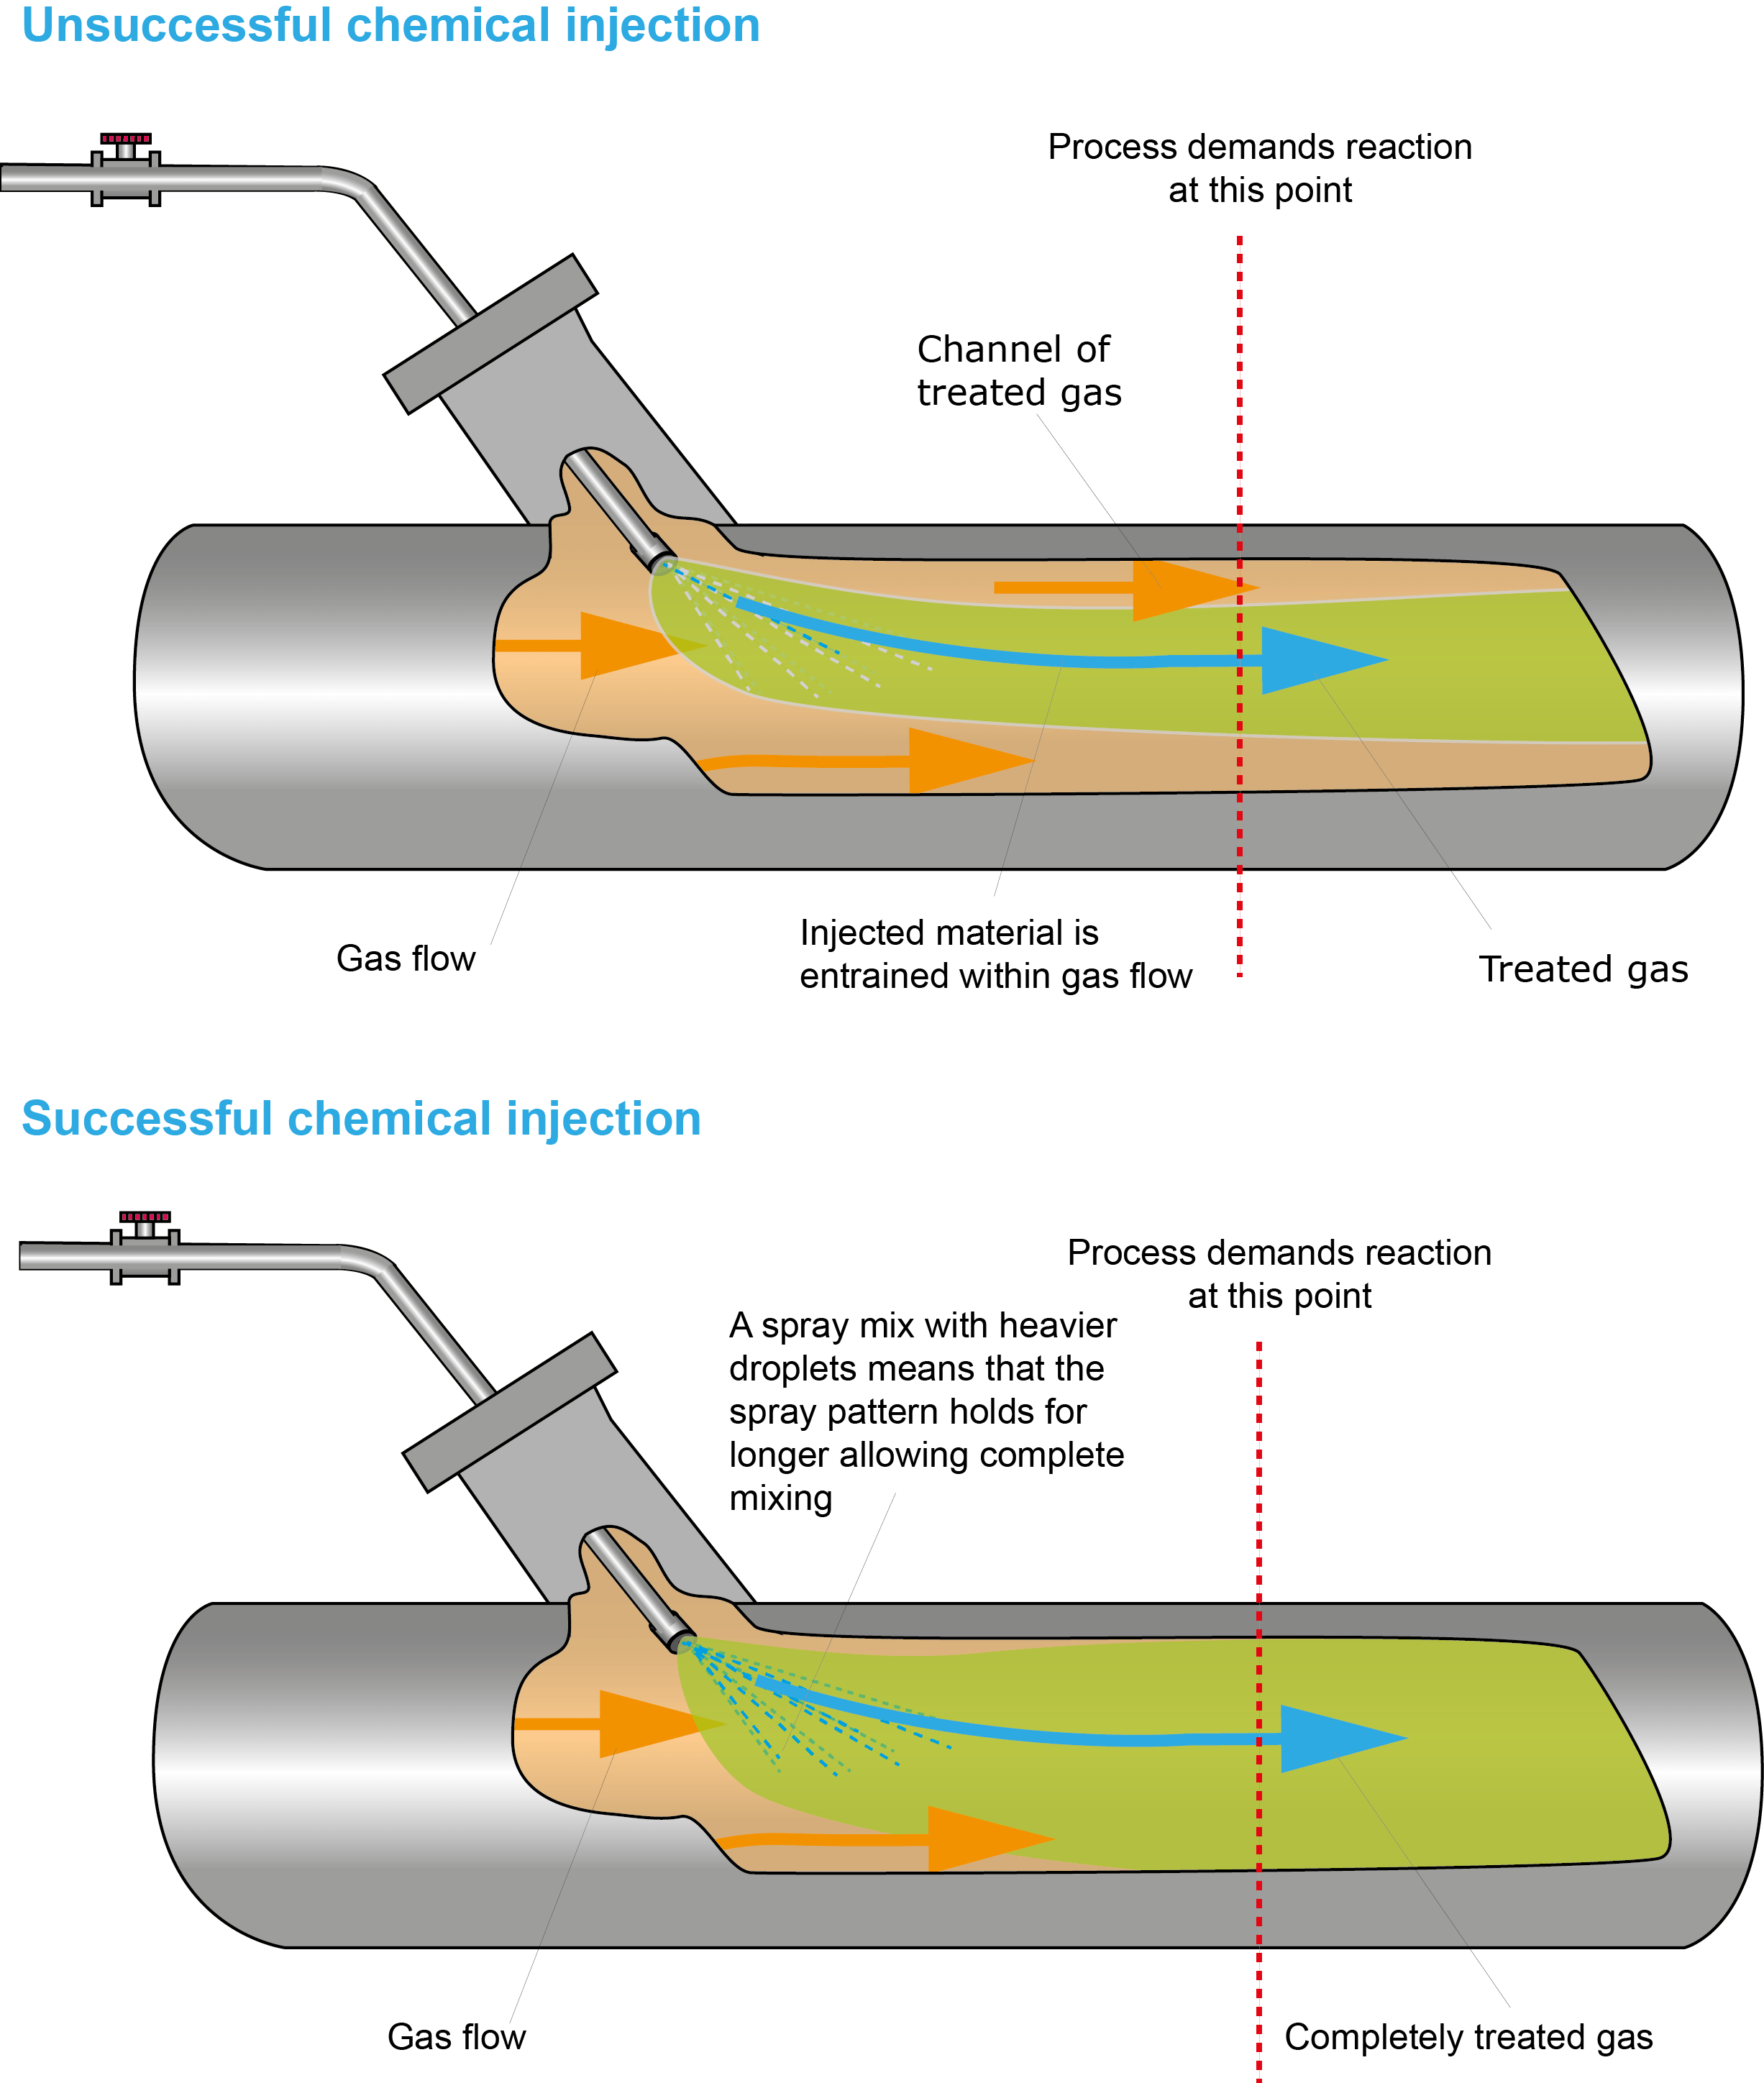 medium resolution of diagram showing chemical injections